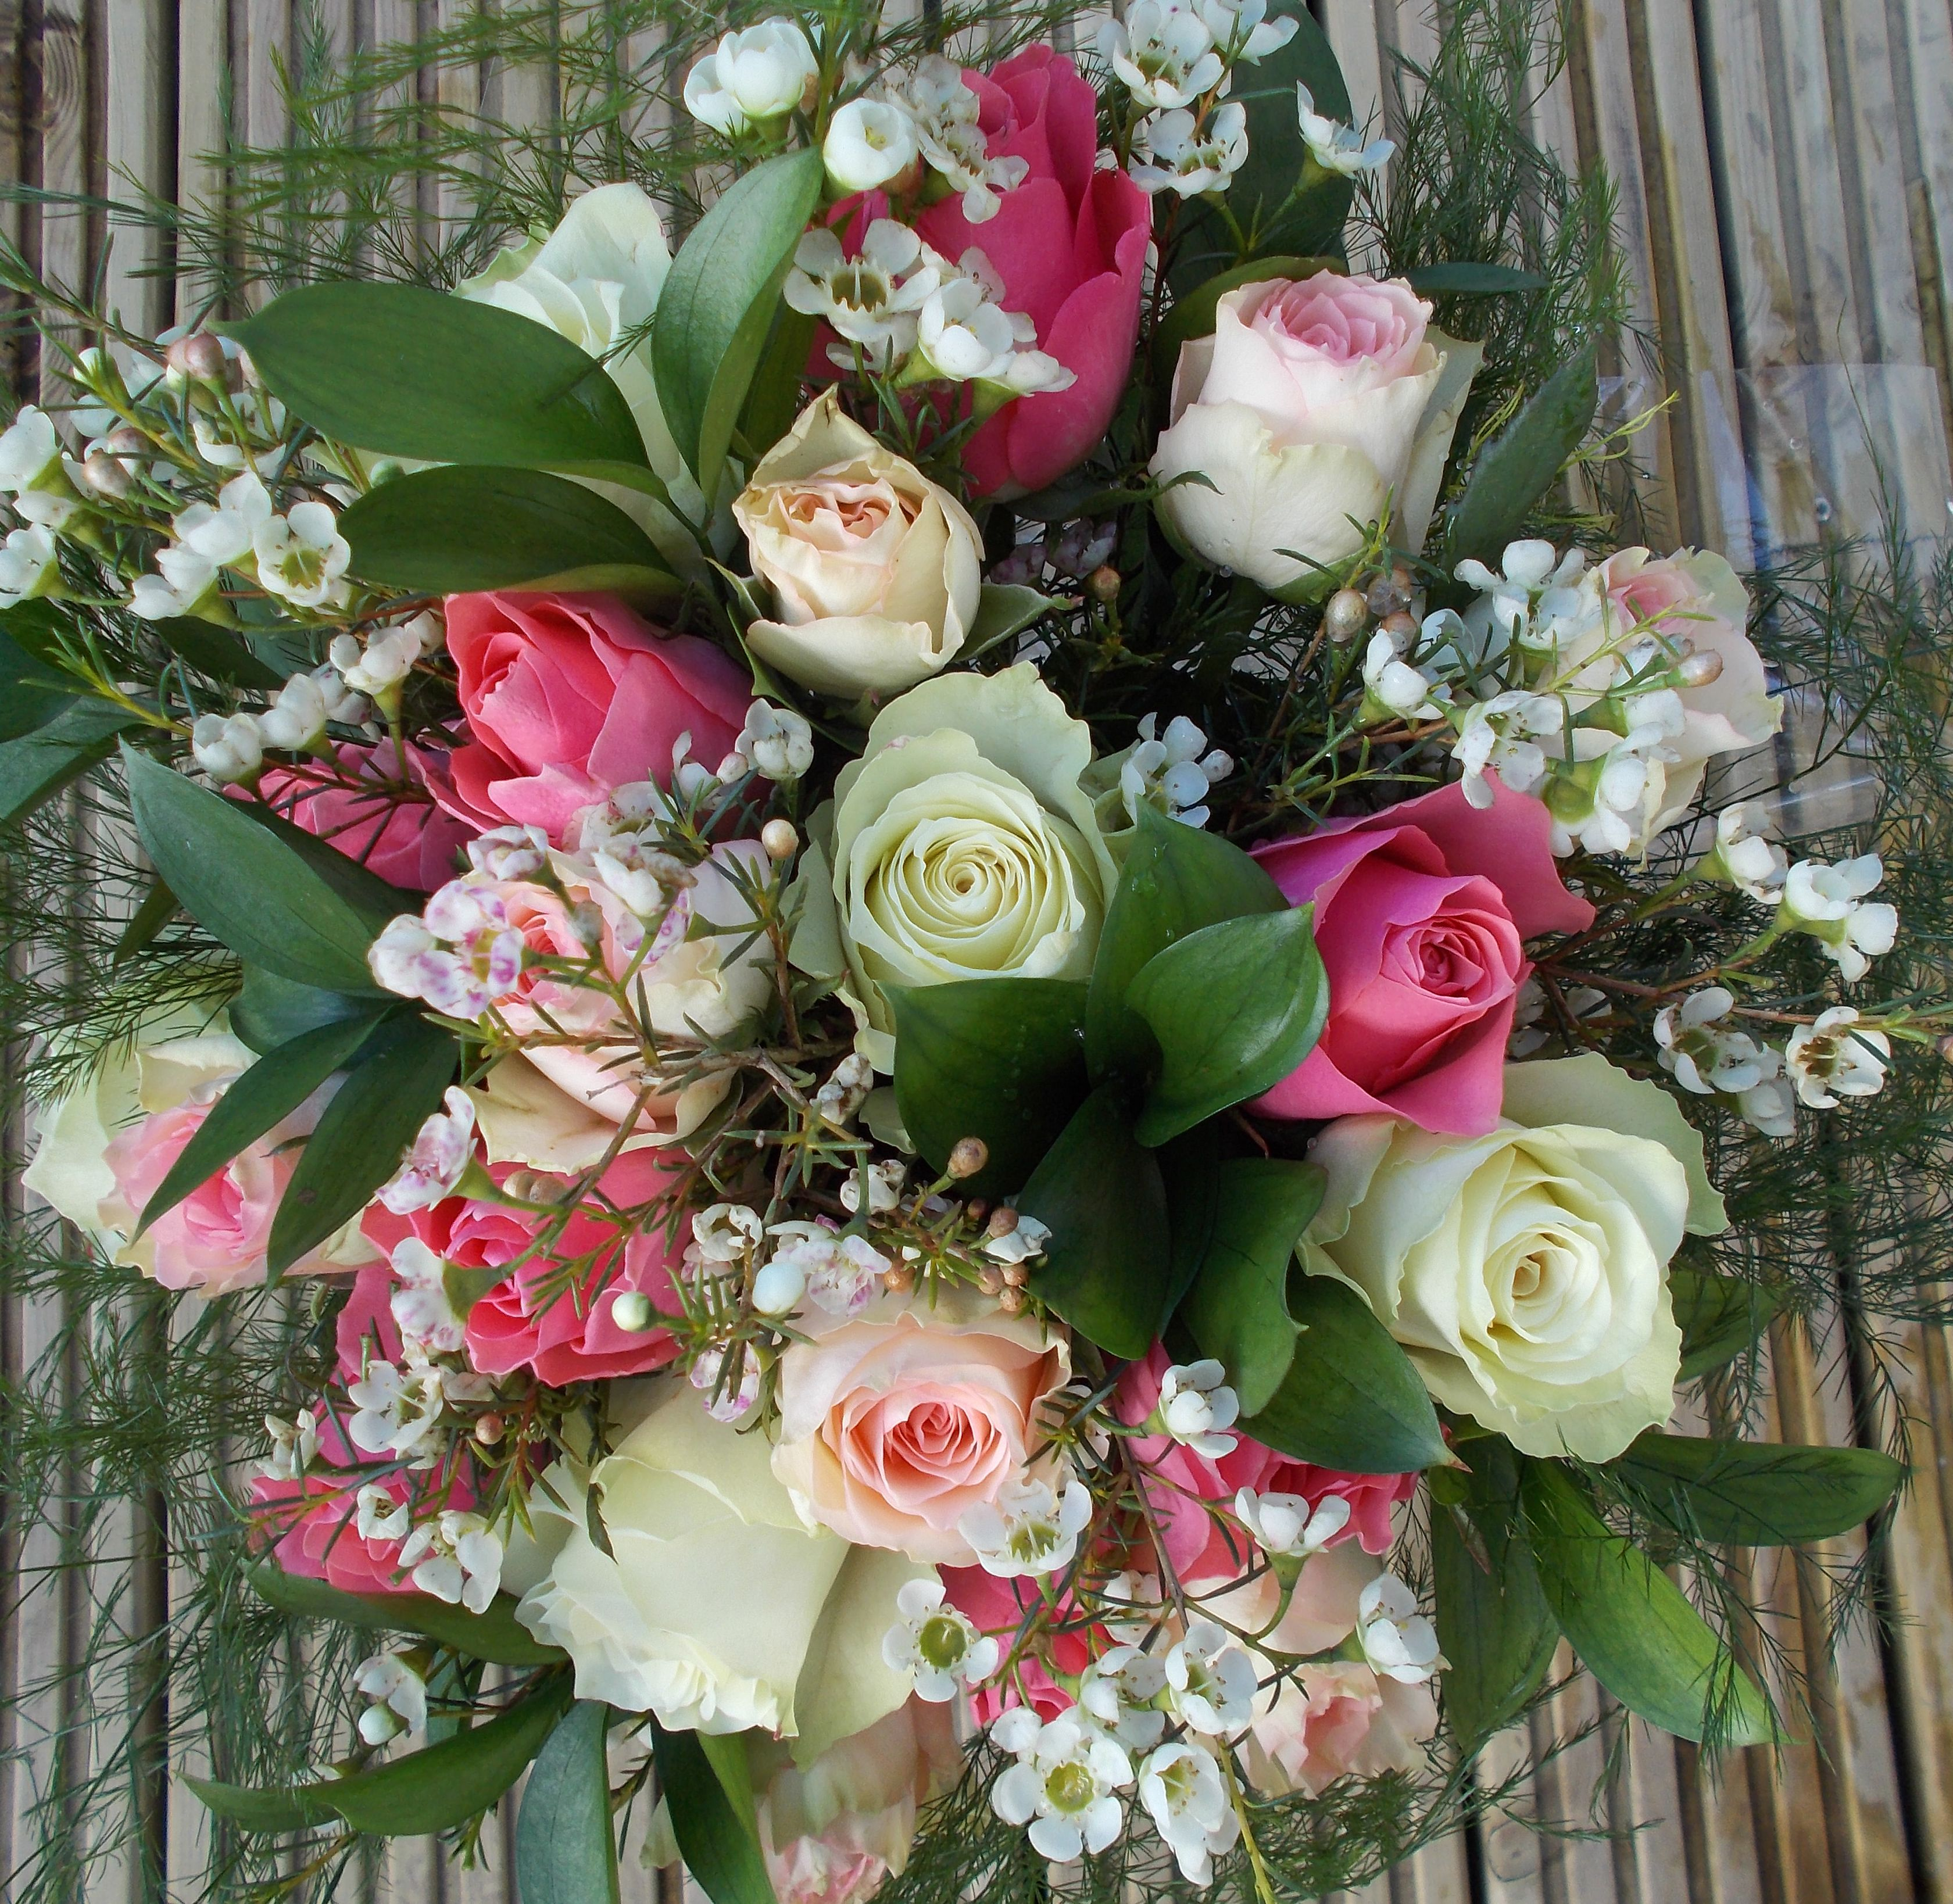 Wonderful roses and wax flower bouquet a gift to your door wonderful roses and wax flower bouquet a gift to your door arranged and delivered izmirmasajfo